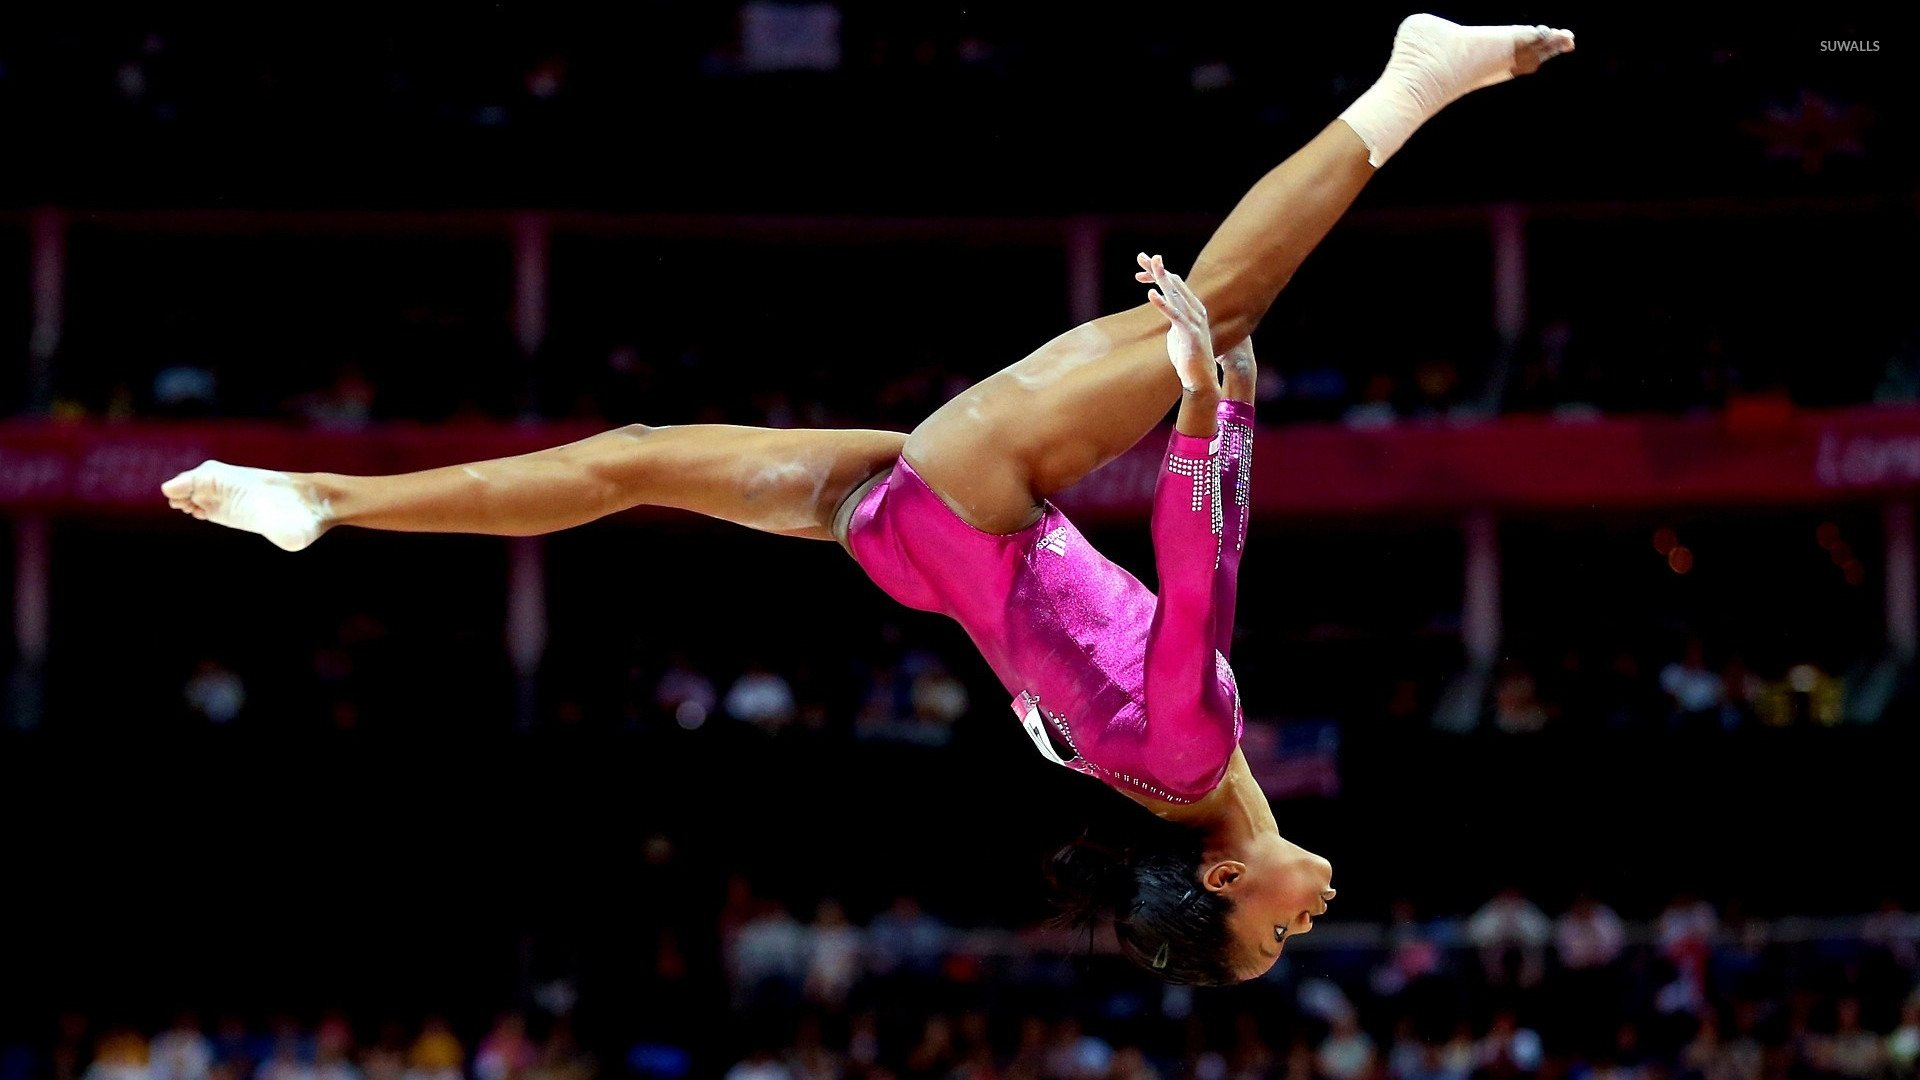 Gymnastics Backgrounds Image